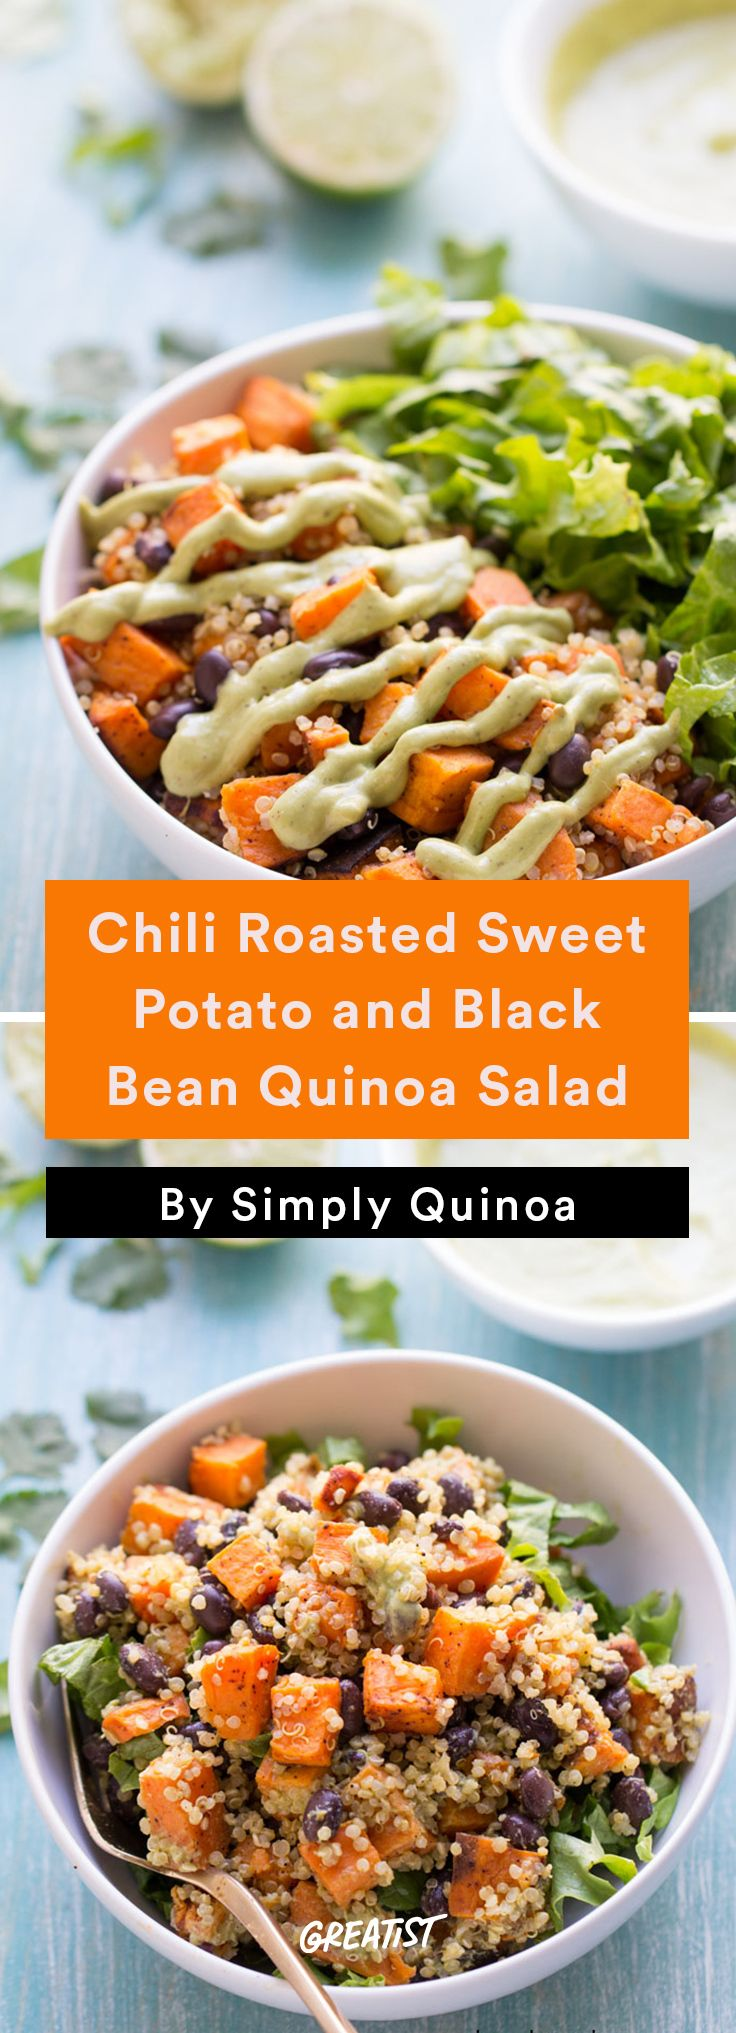 7 Quinoa Salads We Want to Dive Into Headfirst